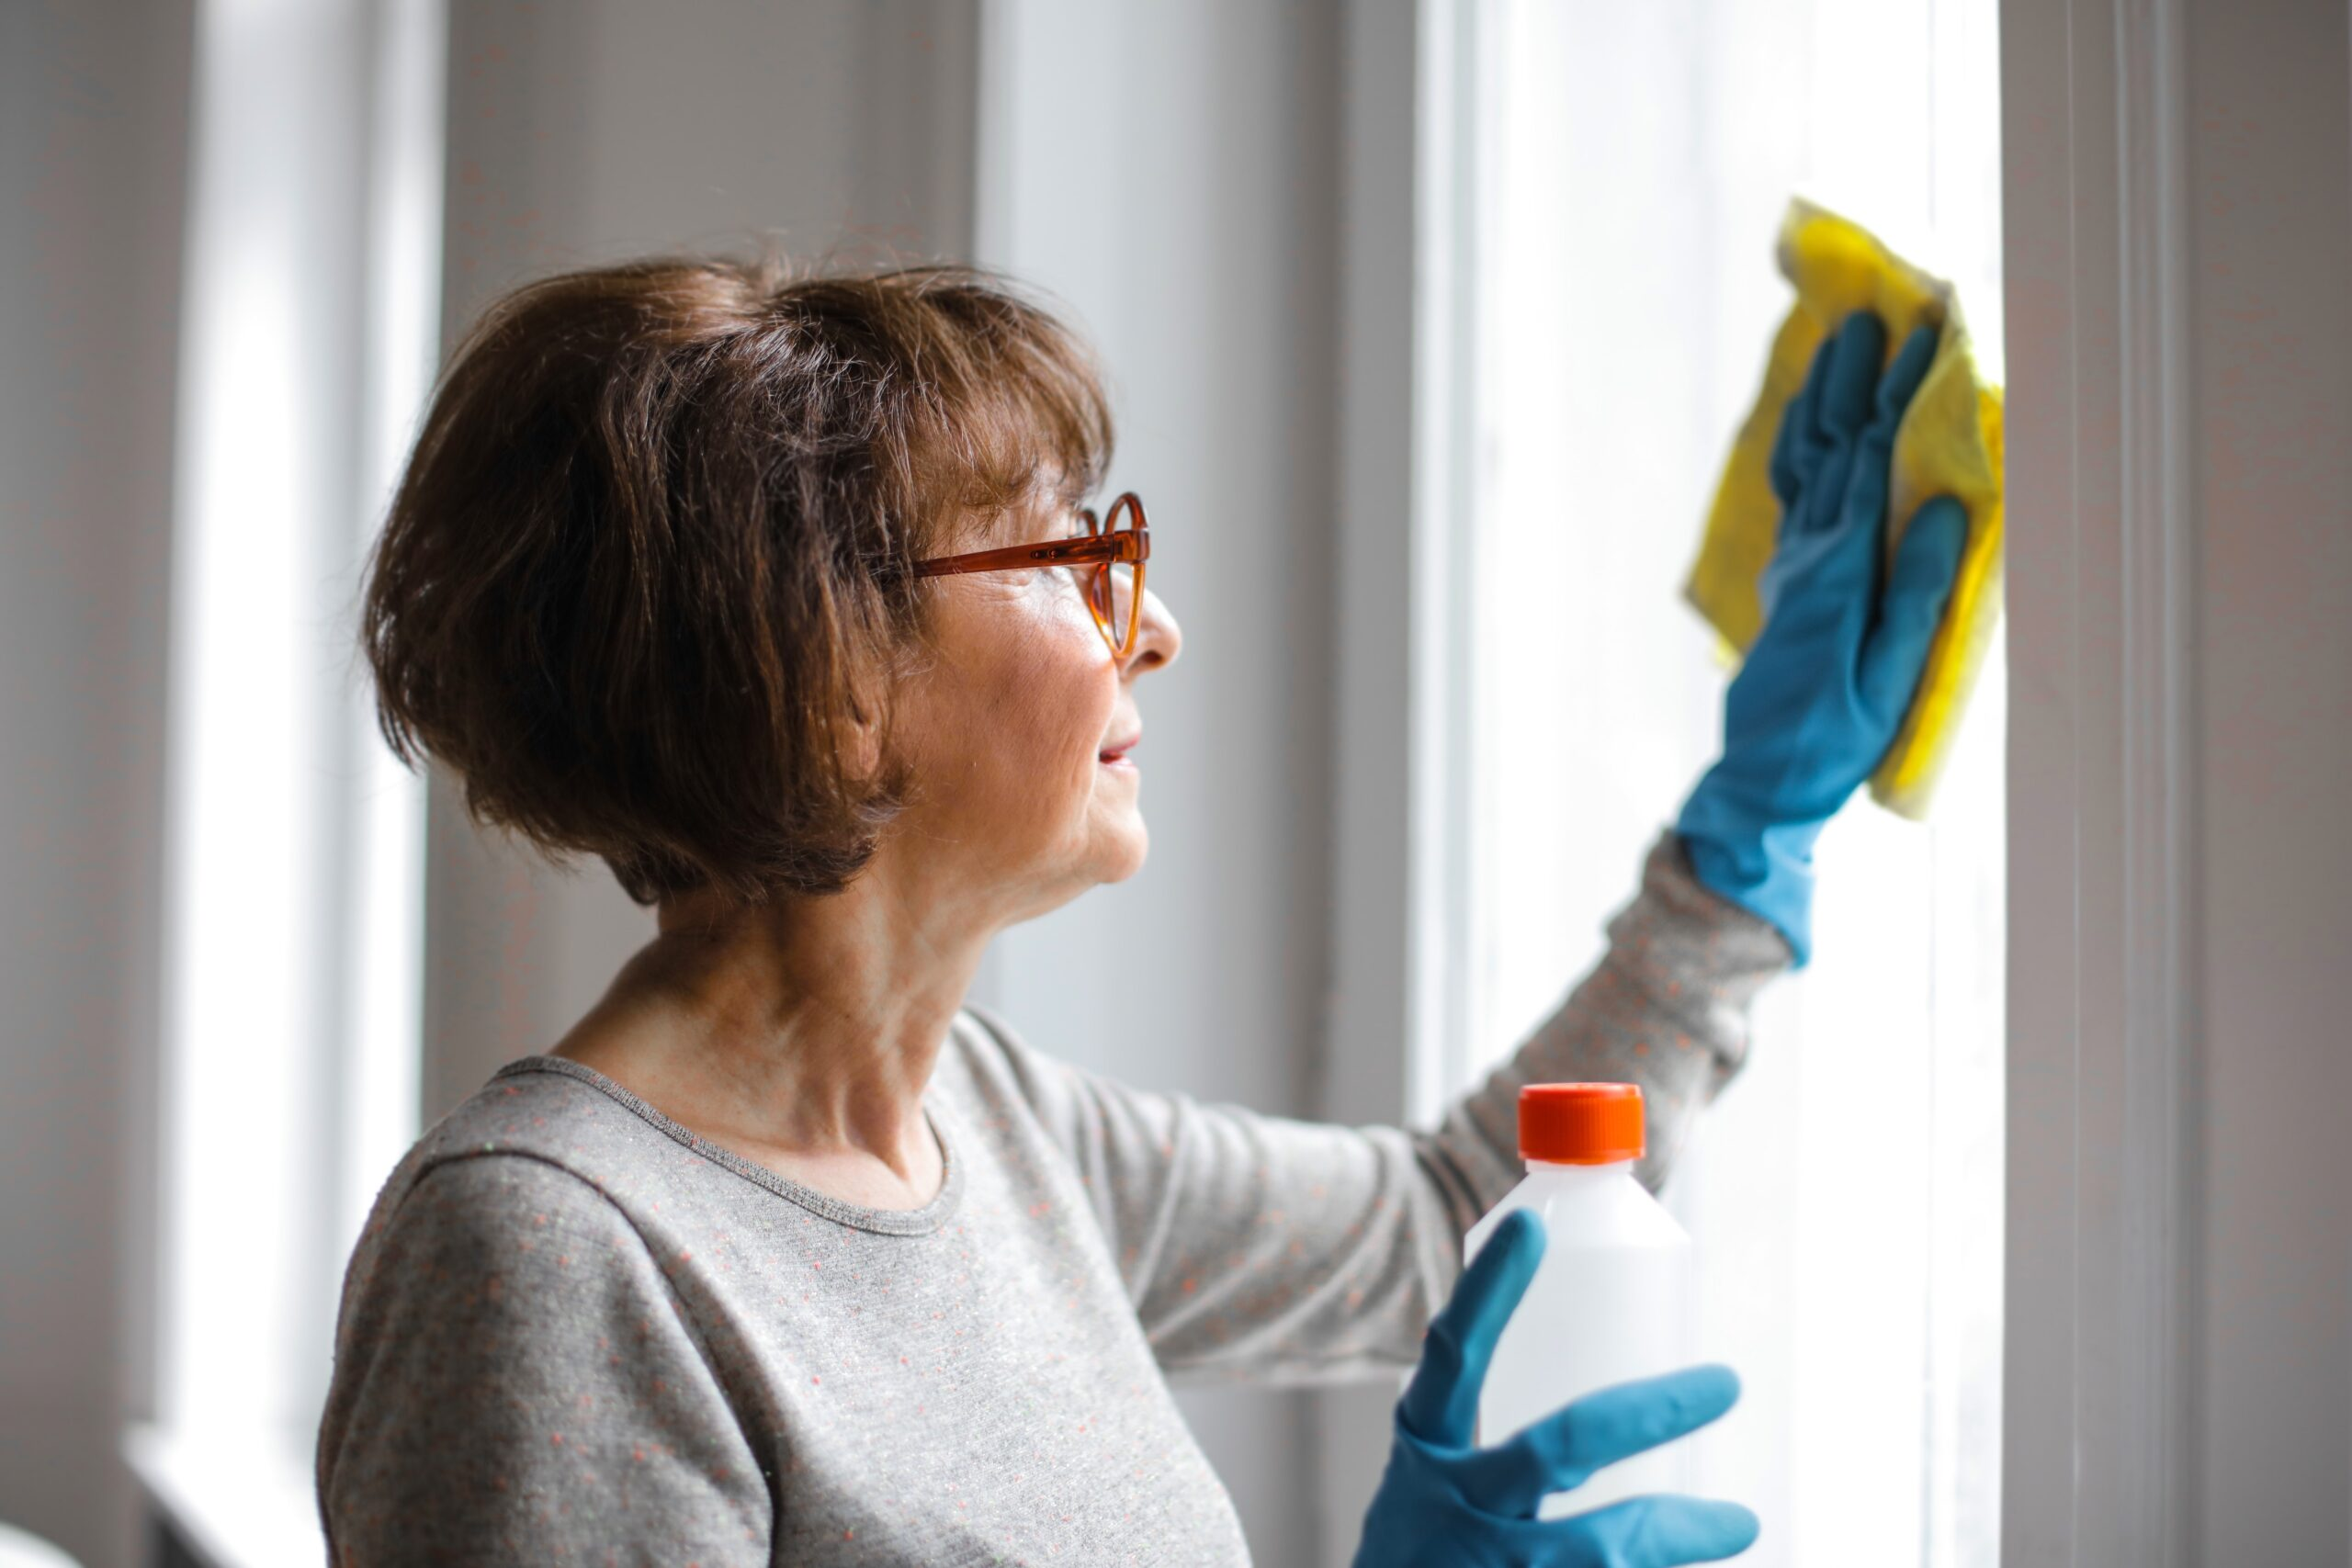 Non-Toxic and Natural Cleaning Products for Your Home